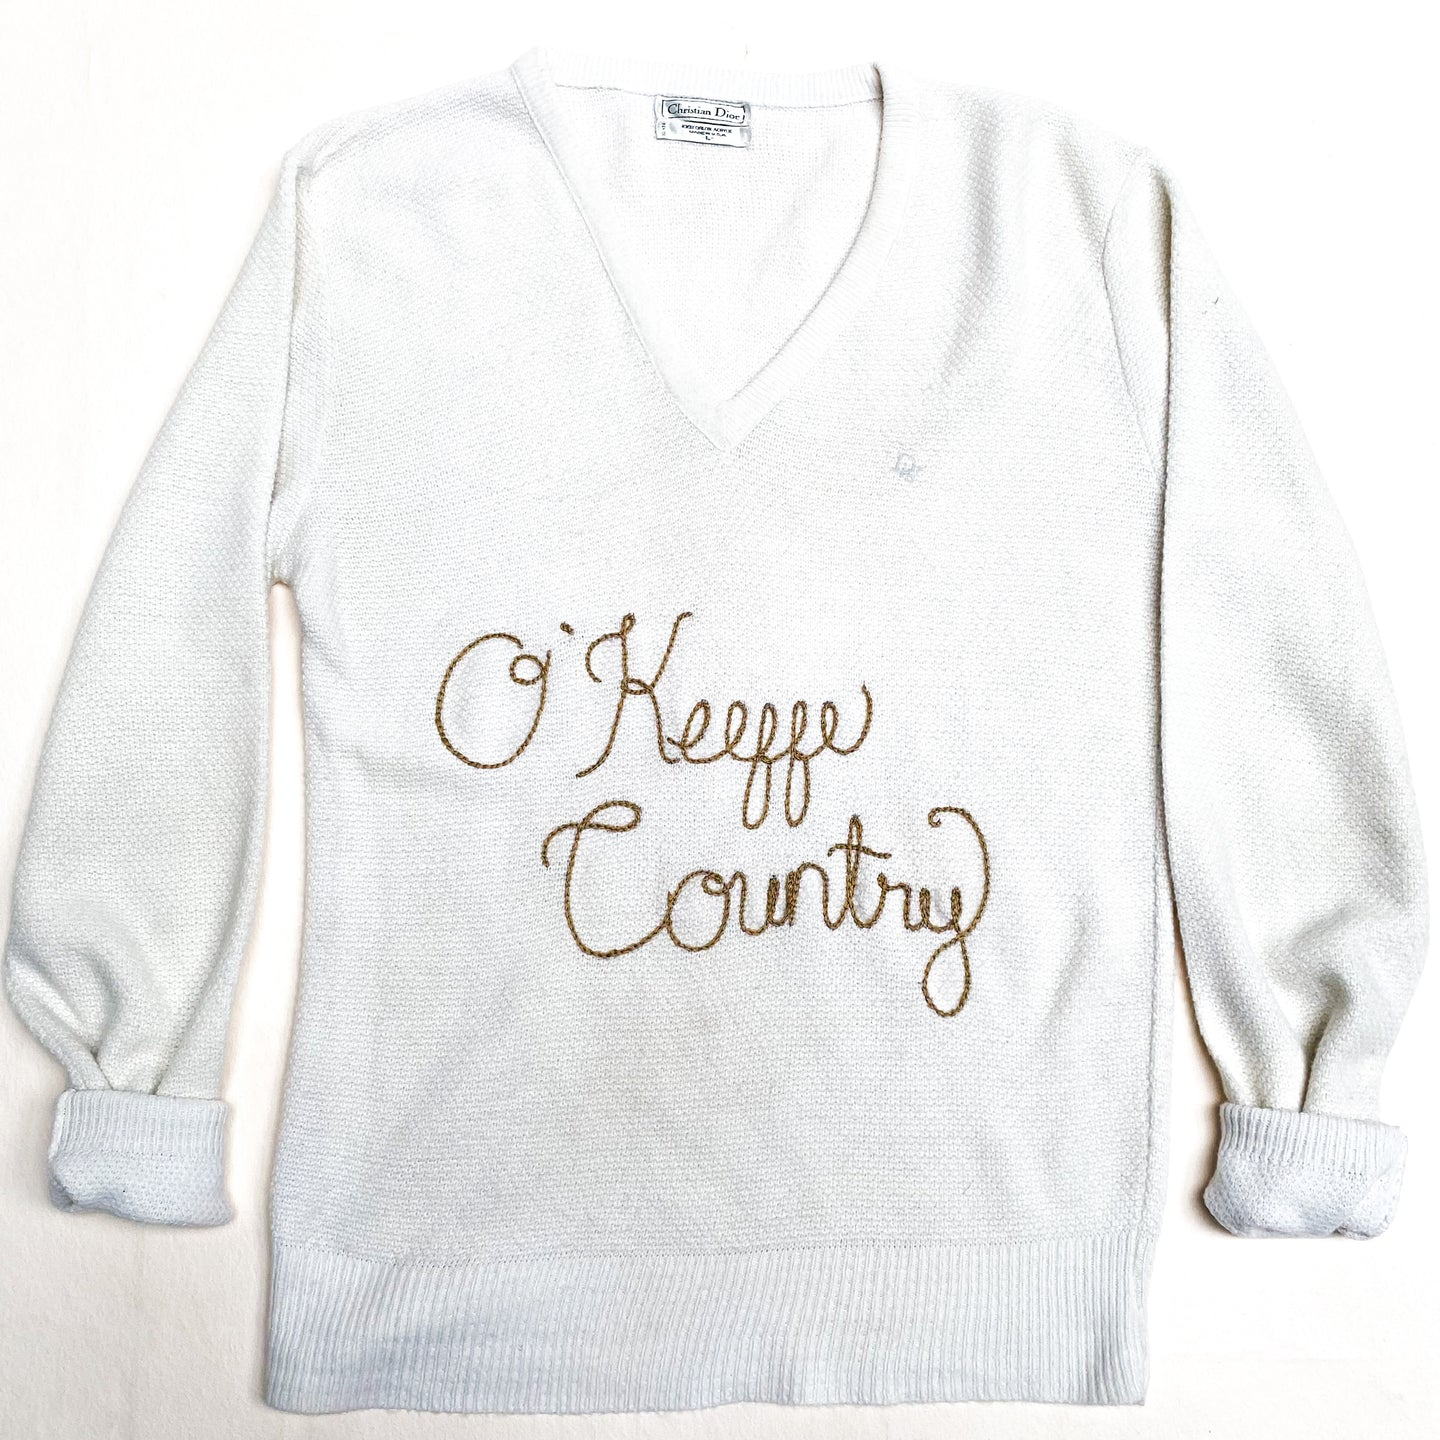 Hand Embroidered O'Keeffe Country on Vintage Christian Dior